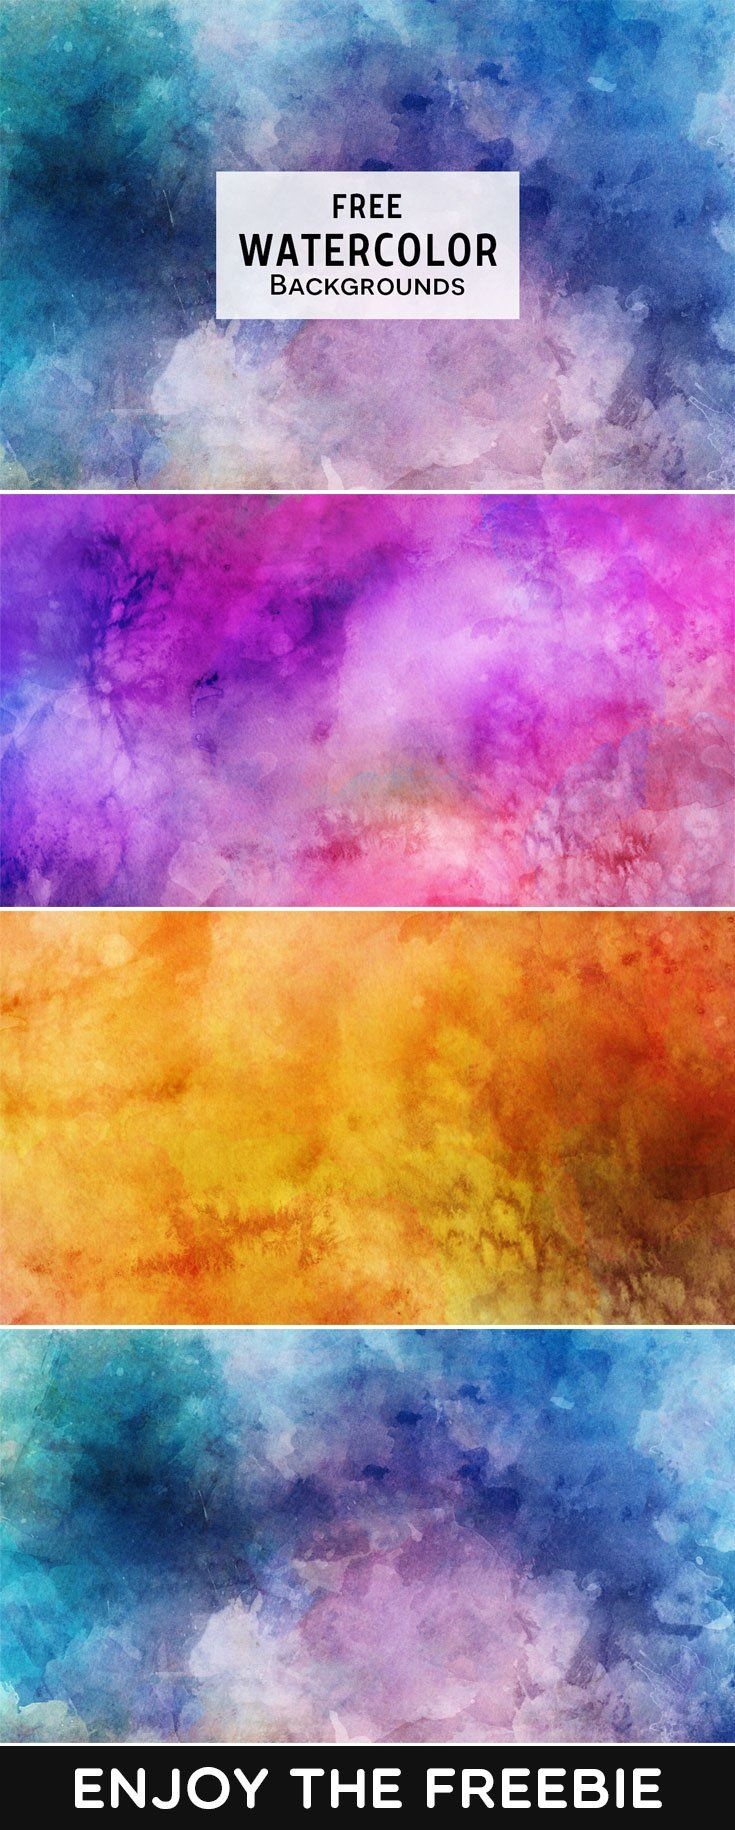 3 Free Watercolor Backgrounds Watercolor Background Watercolor